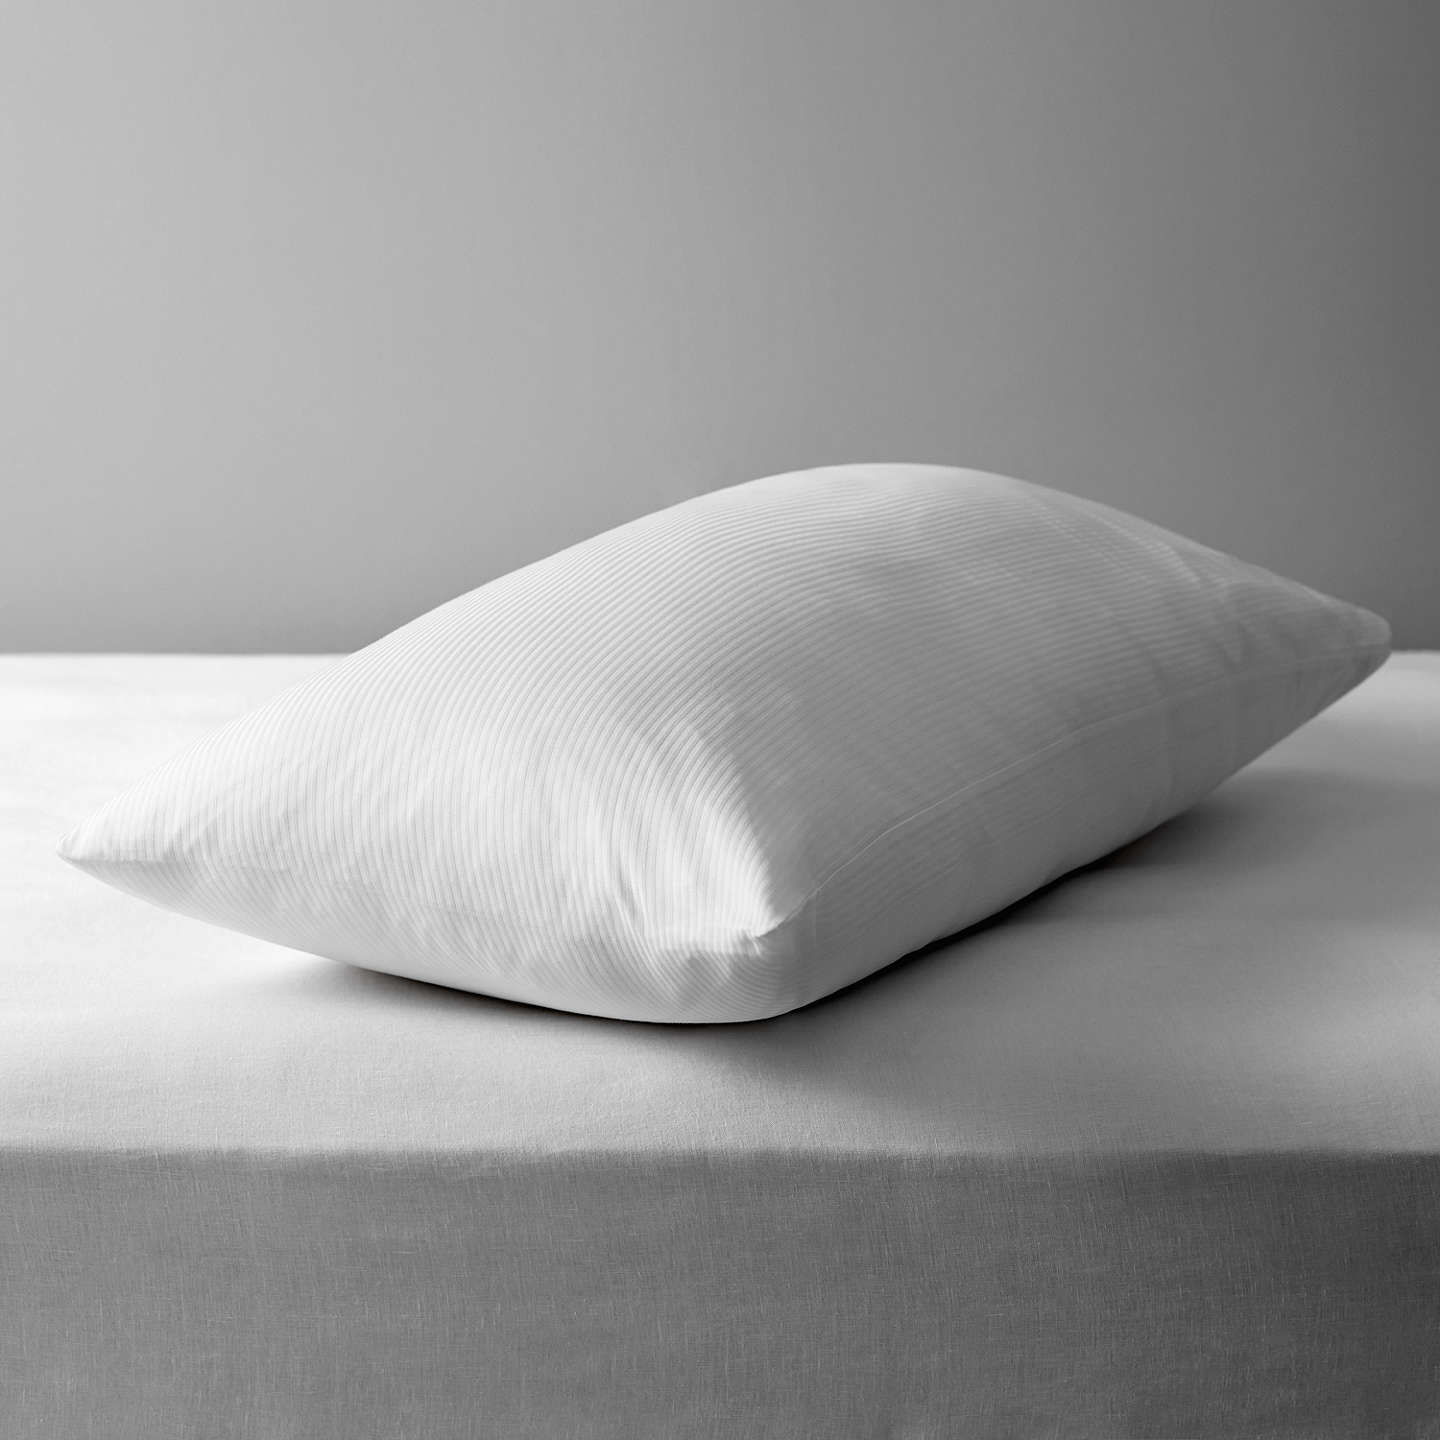 piece white x all amazon flange pillows king for size com pillow shams embroidered you color dp